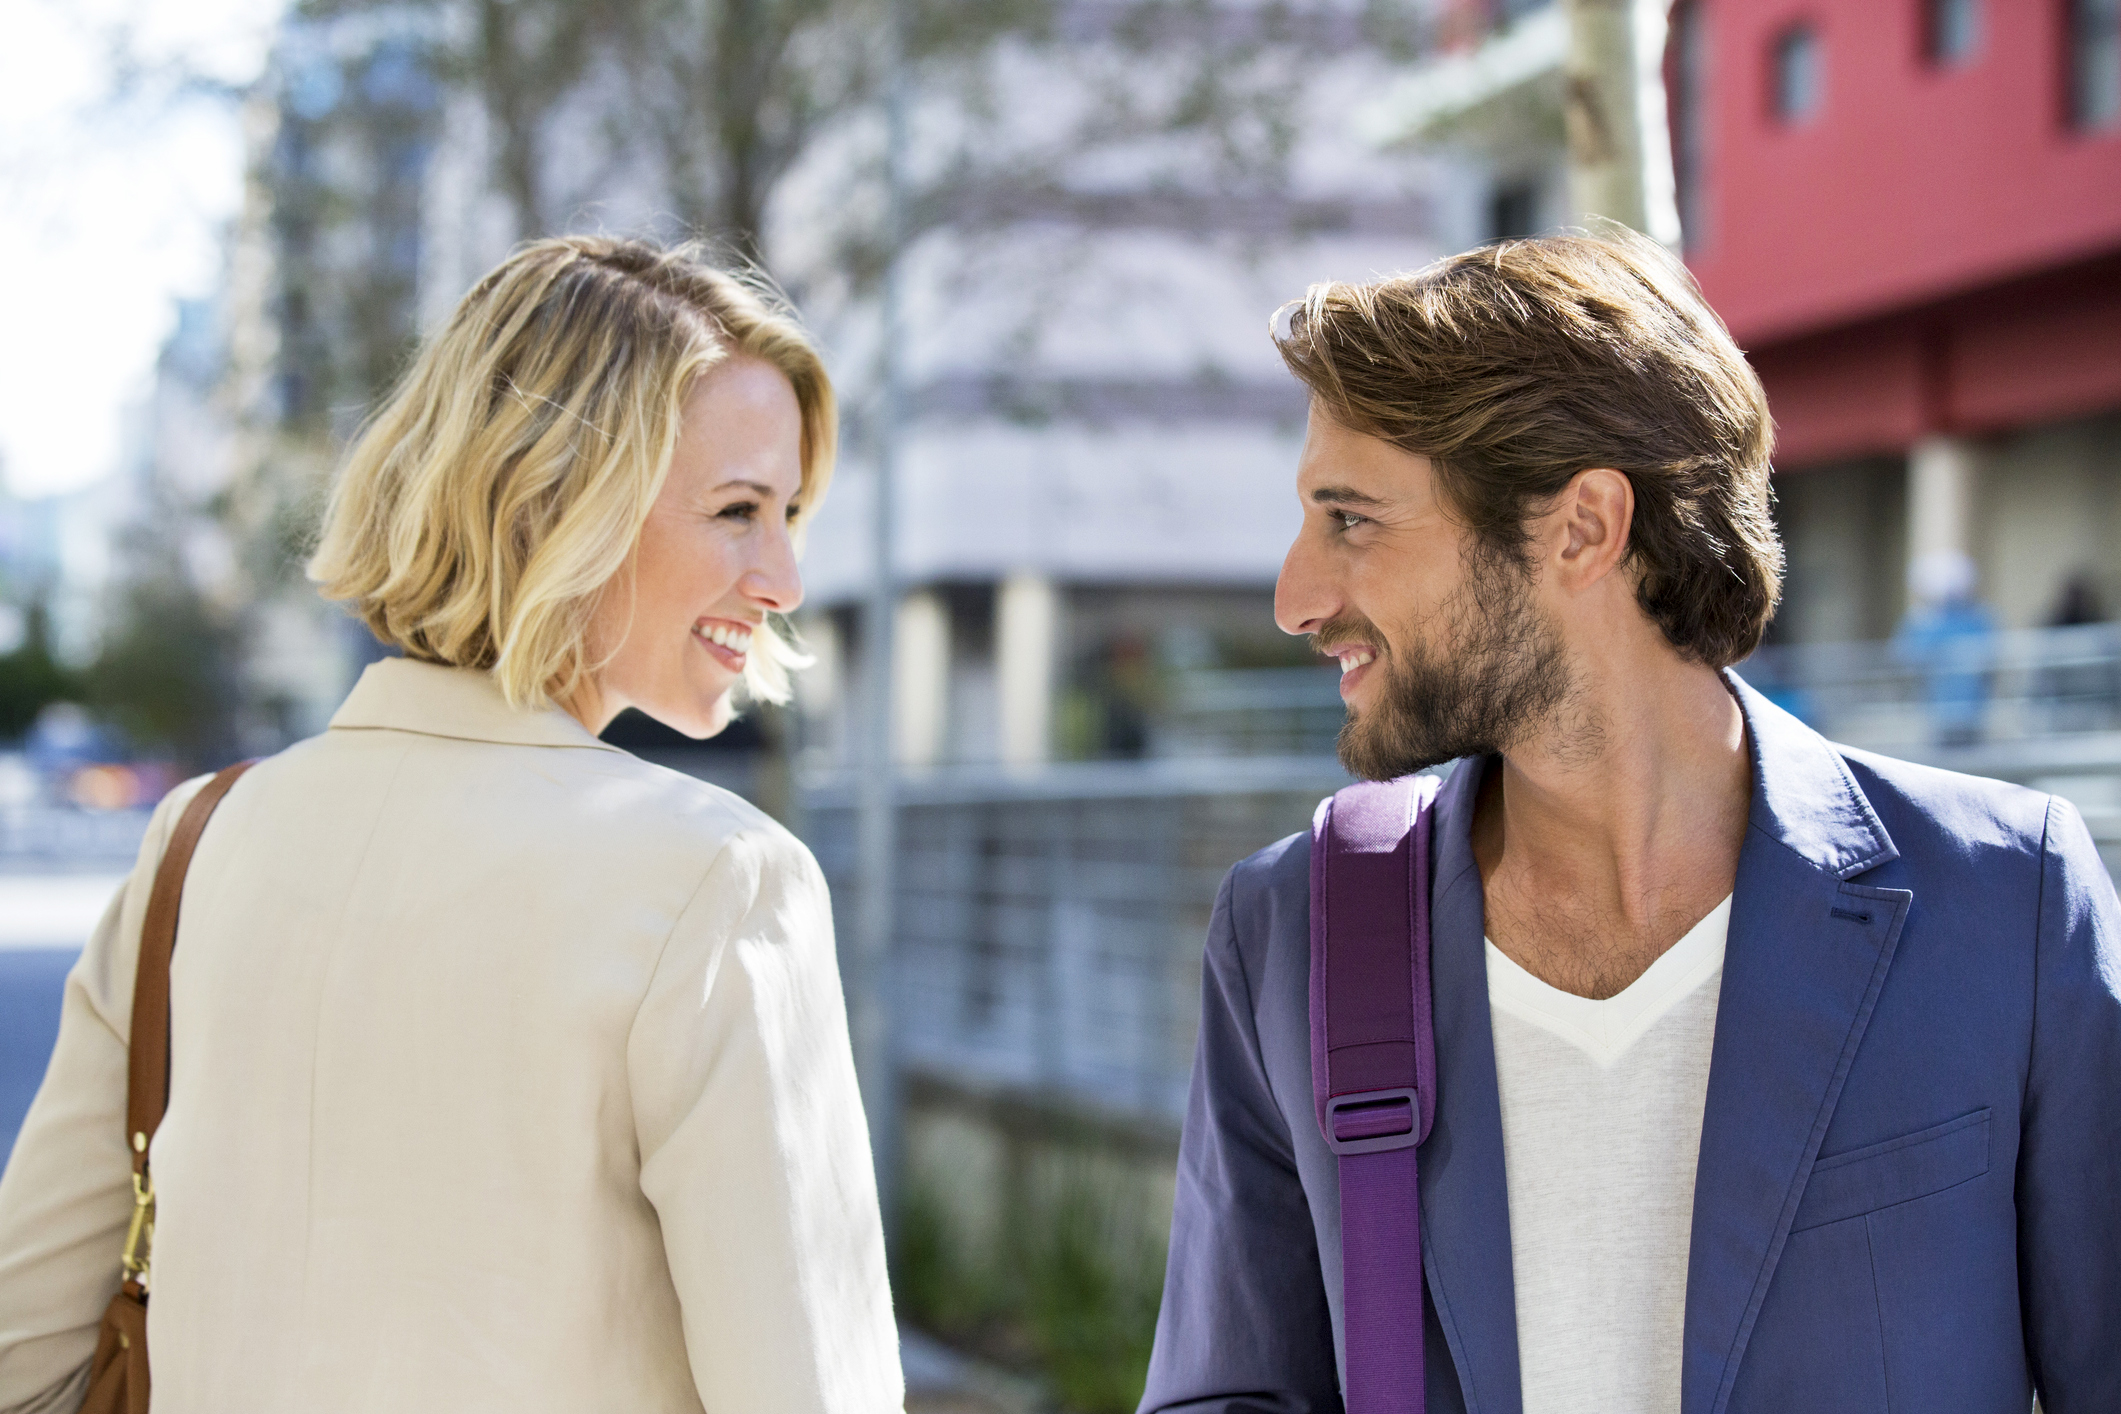 How to Read Male Flirting Signals | LoveToKnow